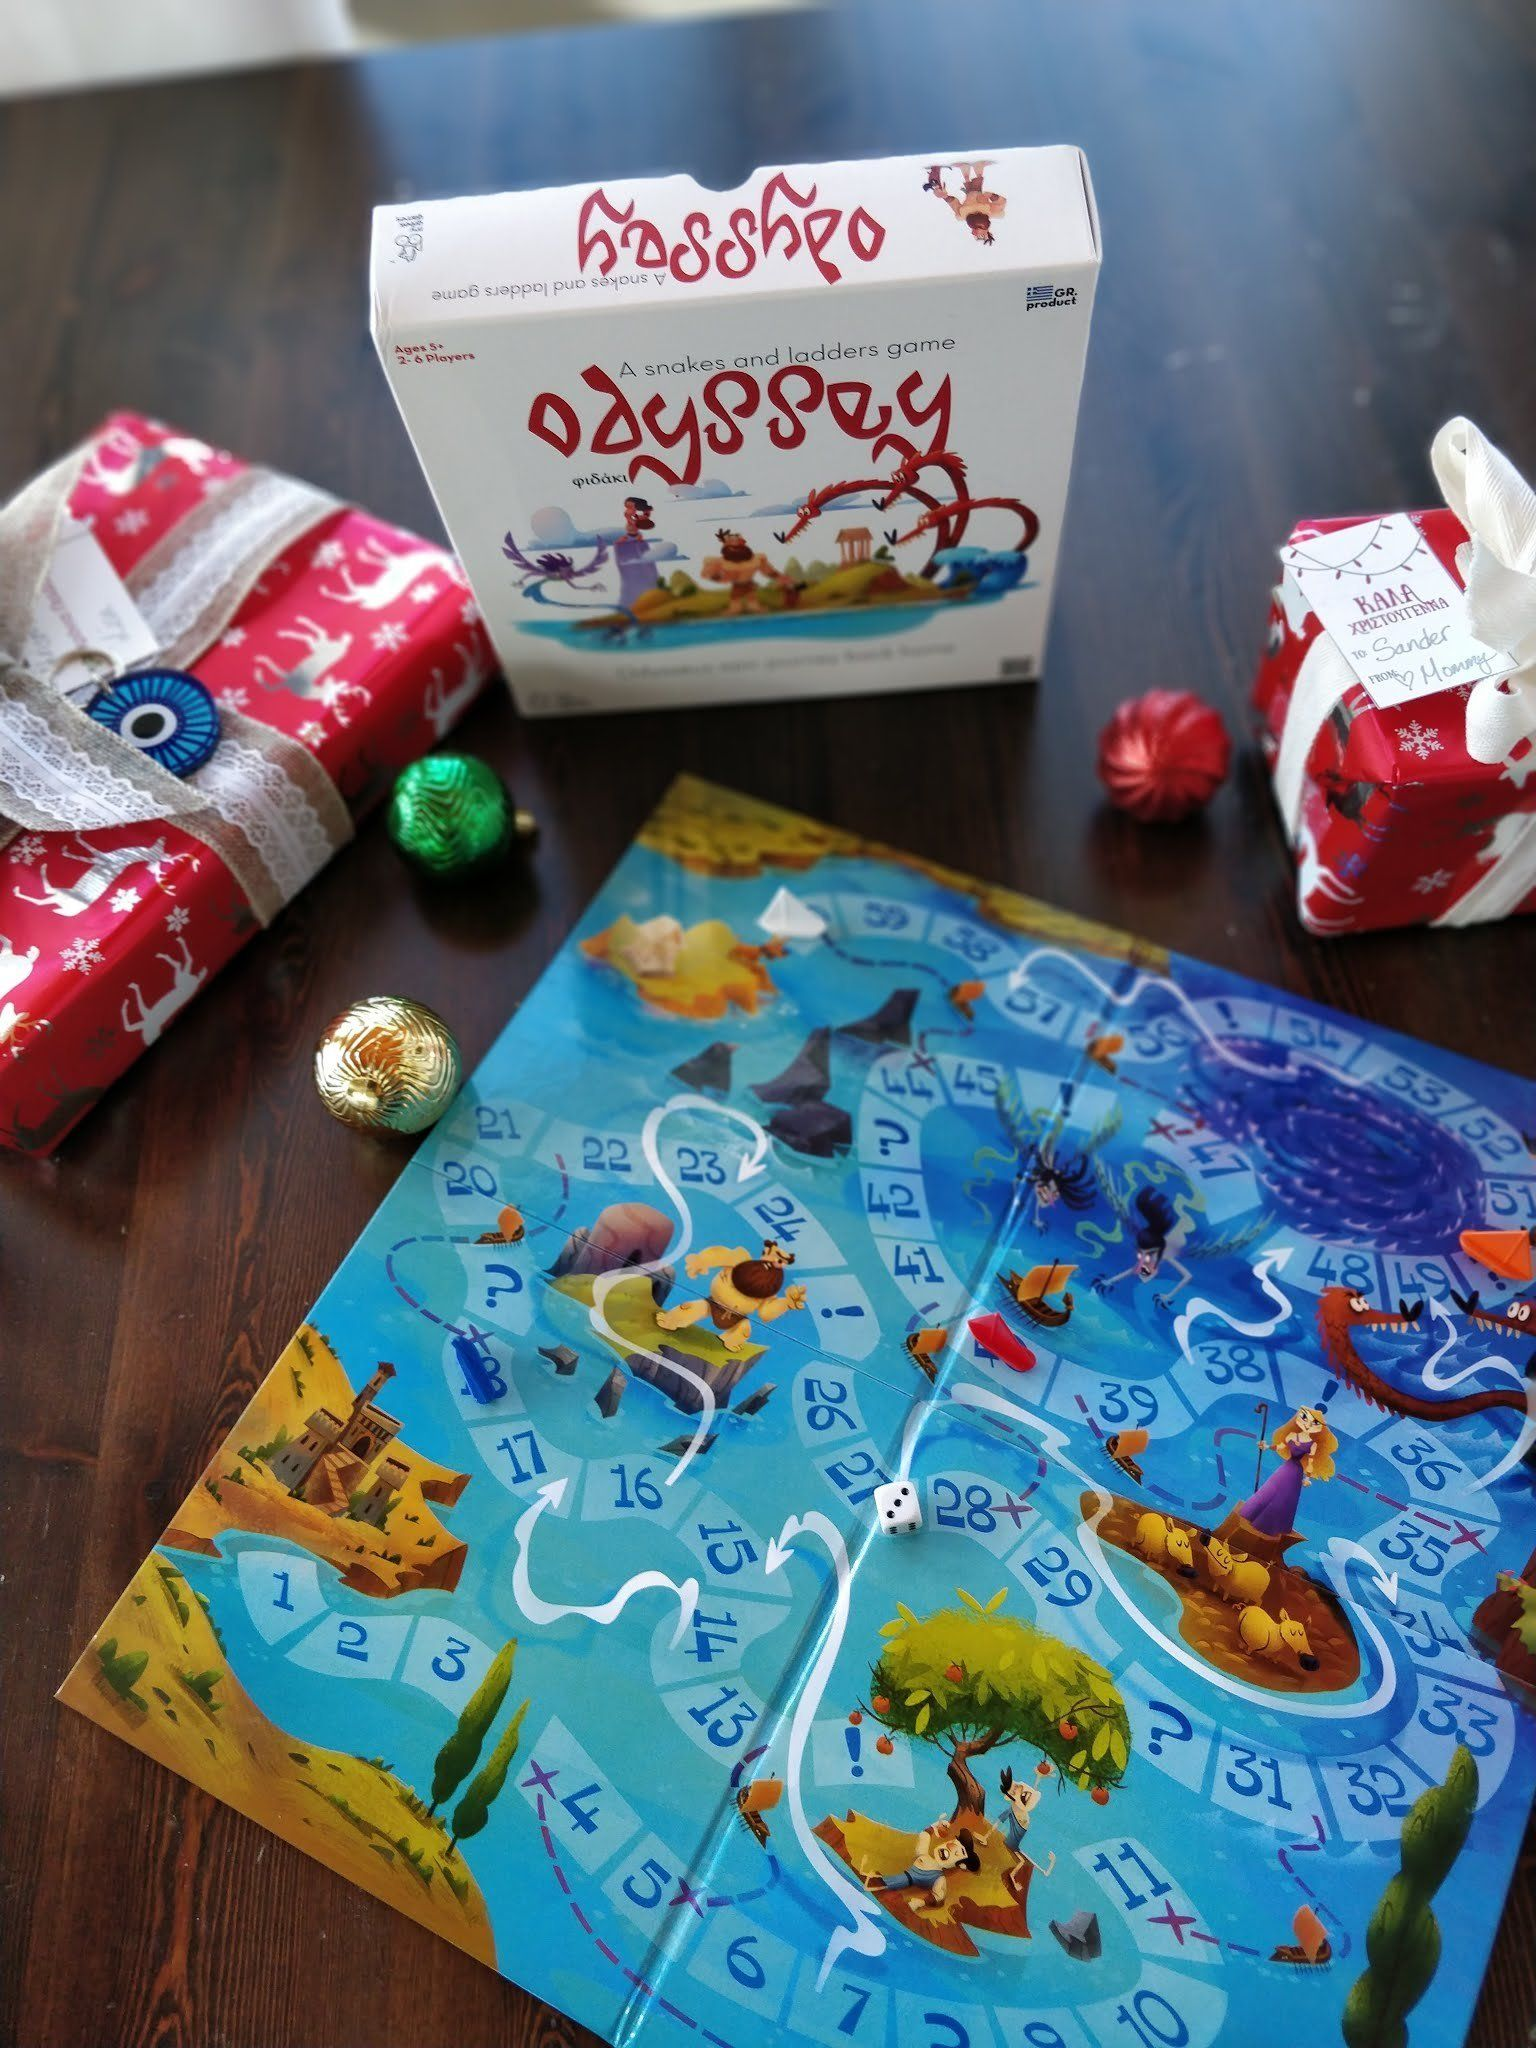 Odyssey: A Snakes and Ladders Game | Products | Games, Board games